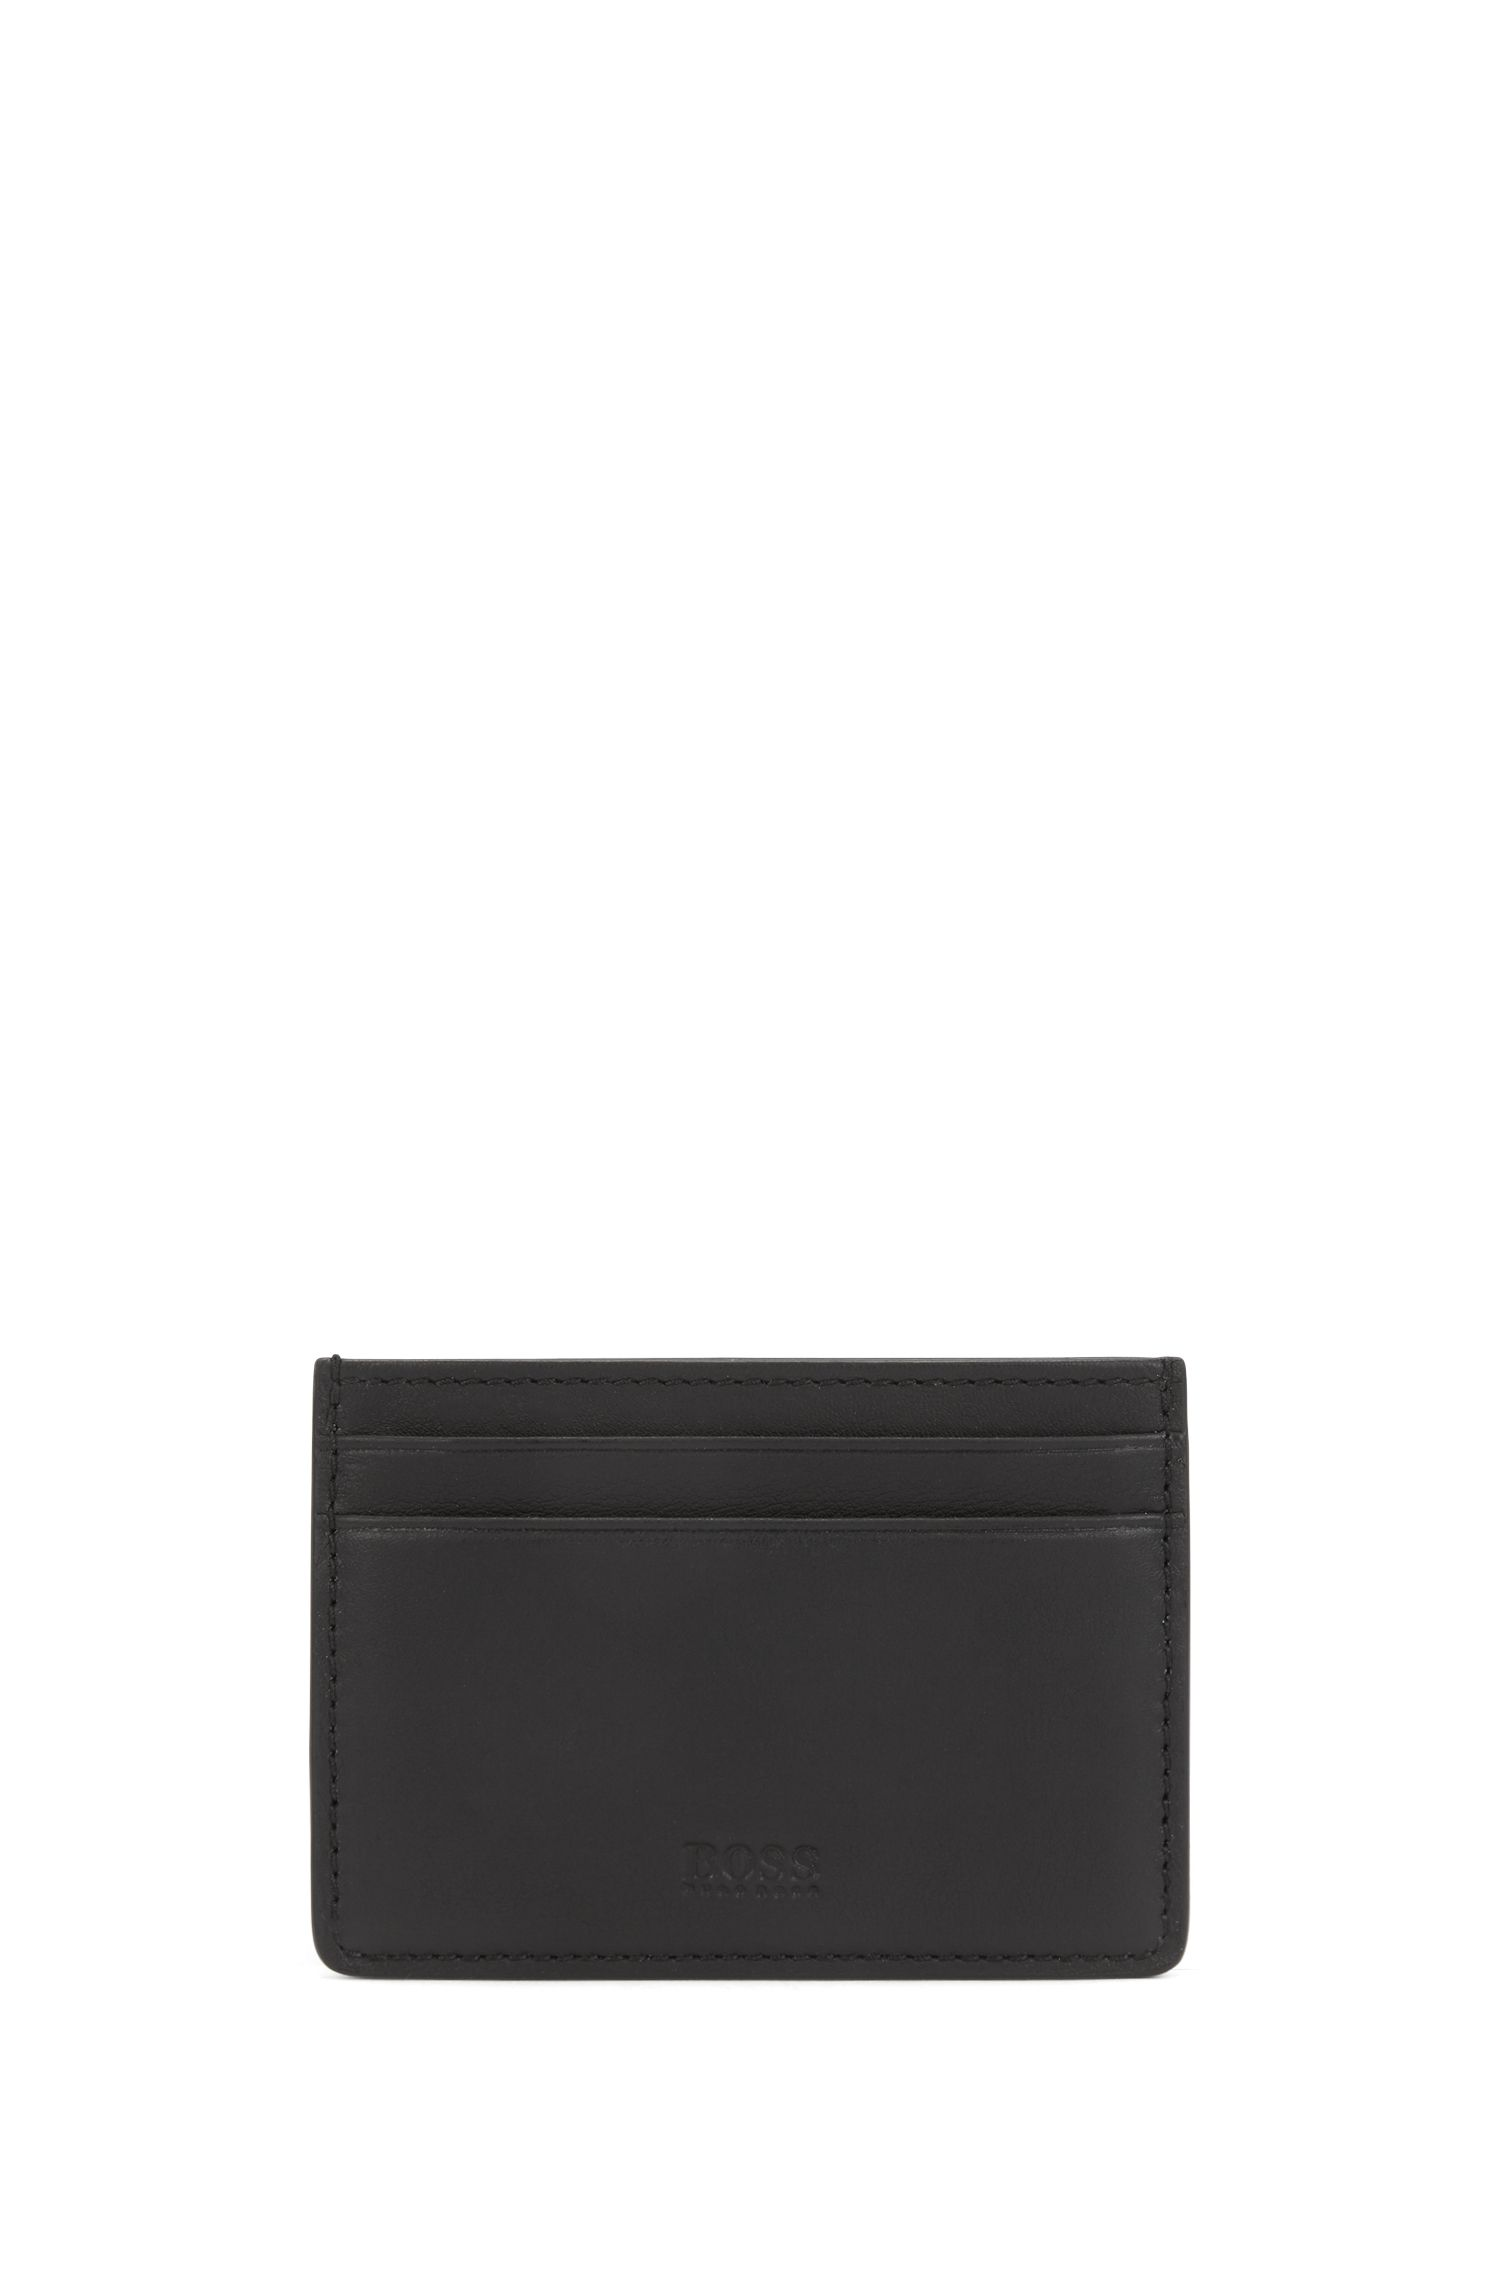 Leather card holder and money clip gift set, Black